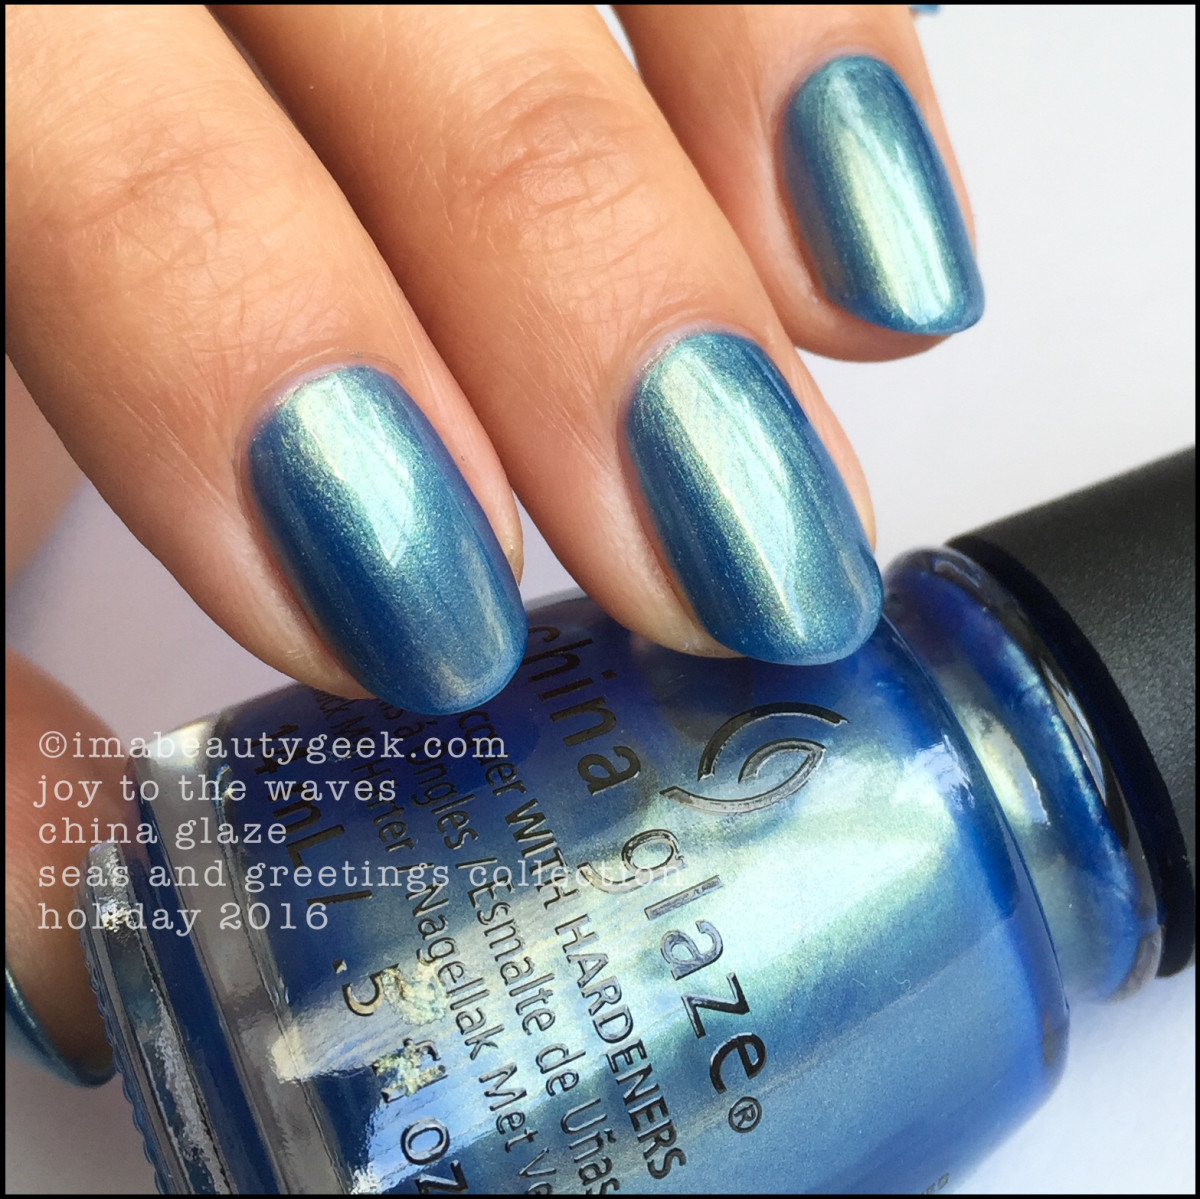 China Glaze Joy to the Waves_China Glaze Seas Greetings Holiday 2016 Swatches Review